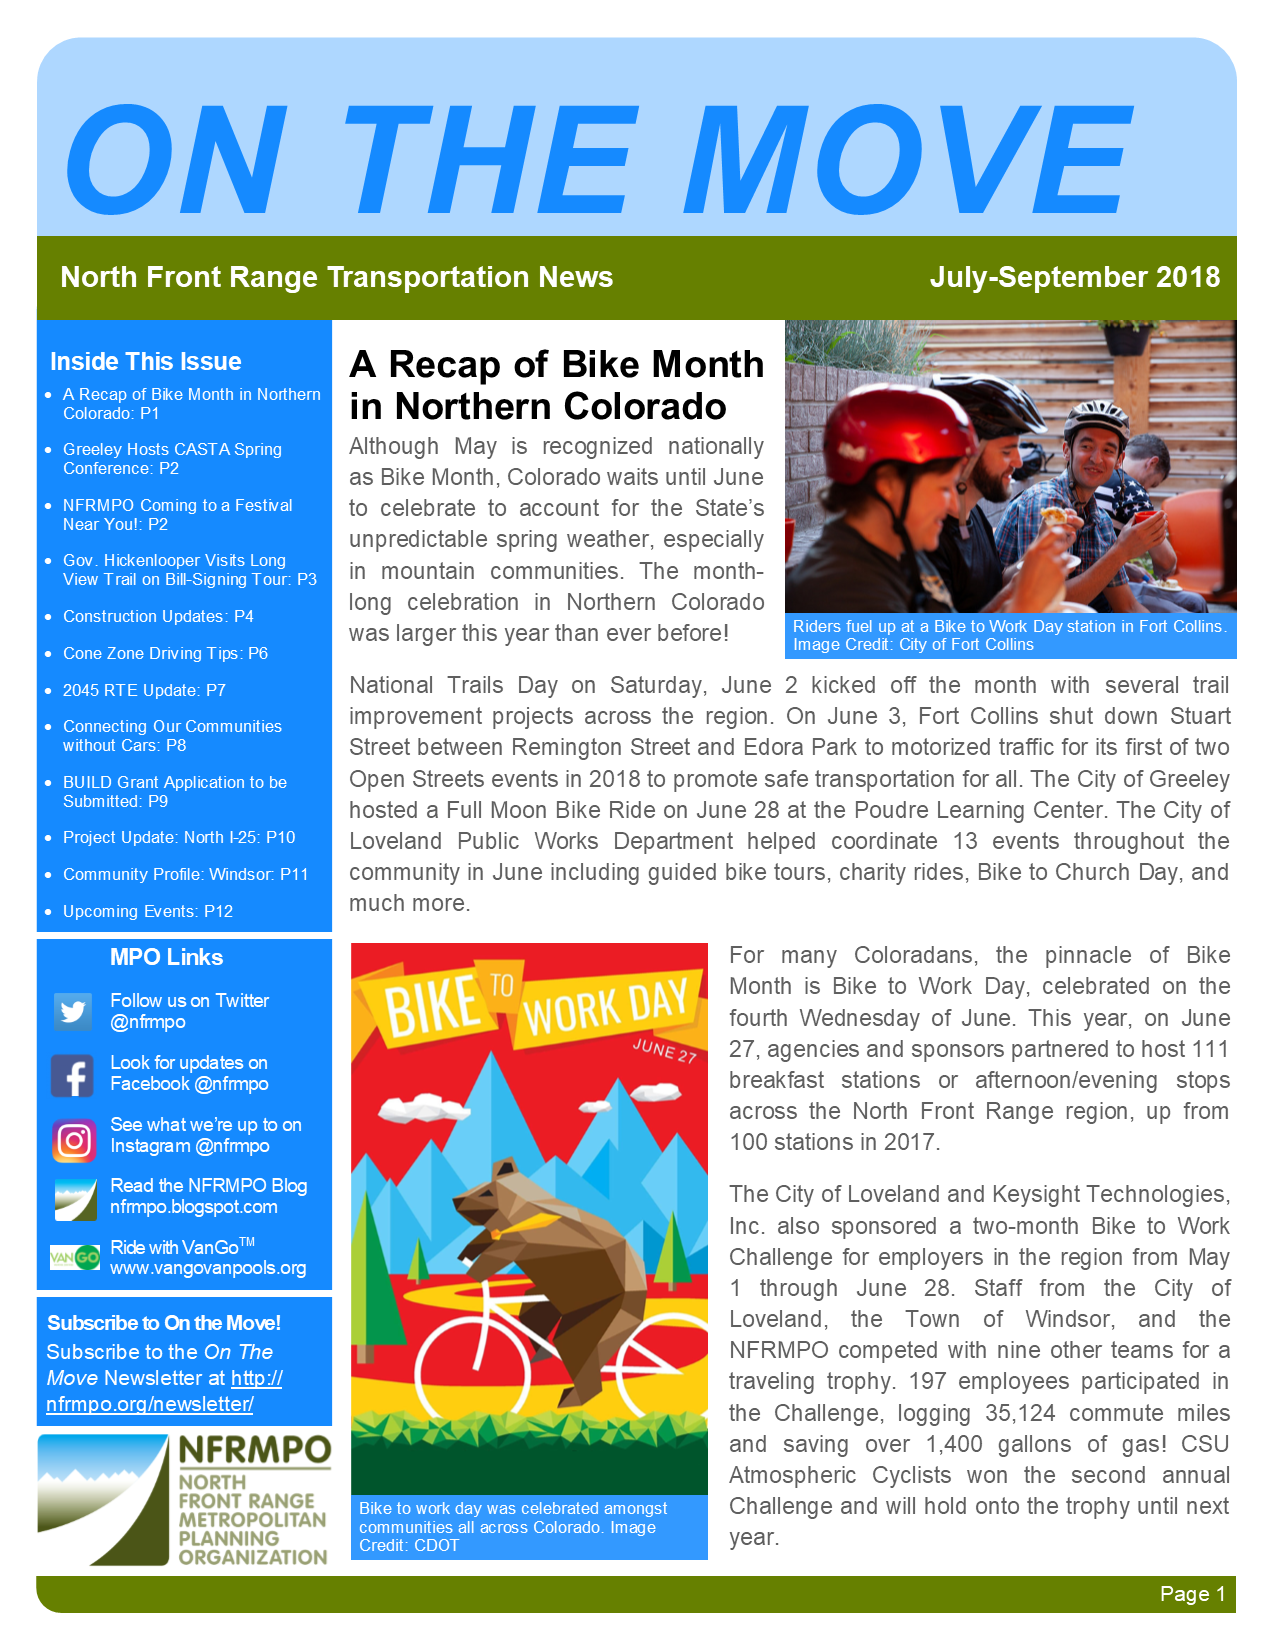 First page of On The Move Newsletter, July-September 2018 edition